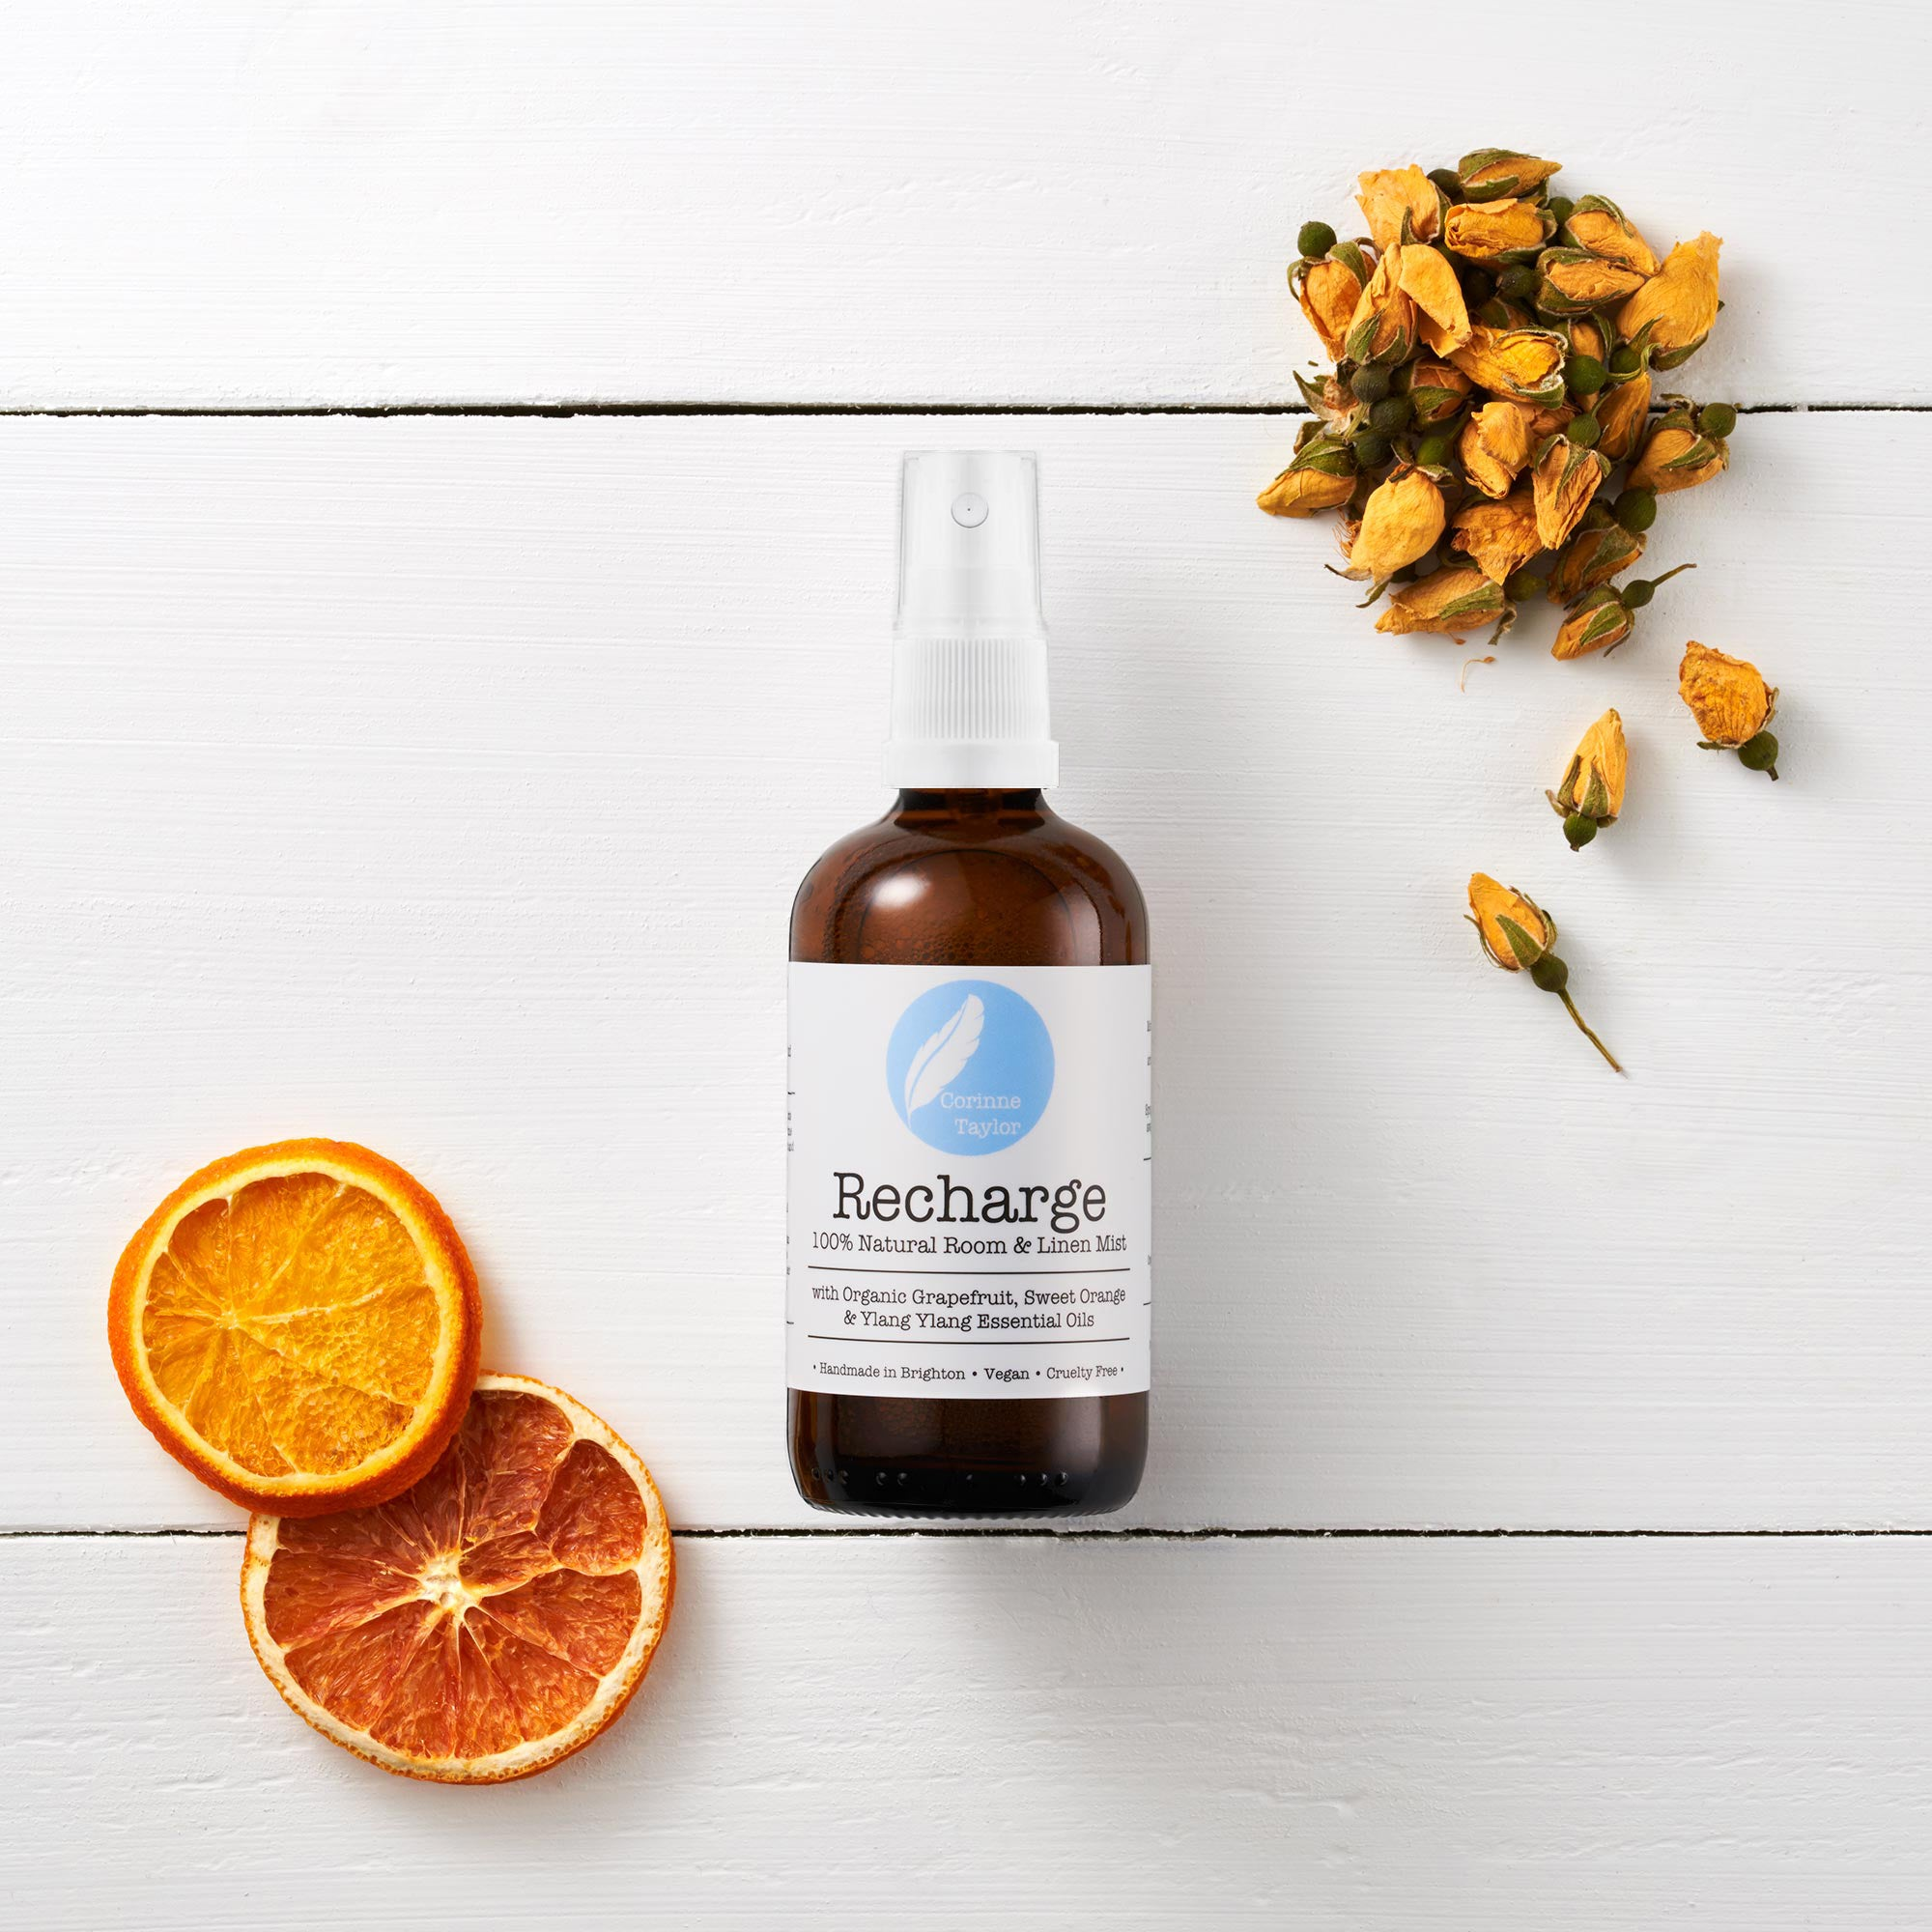 Recharge Aromatherapy room and linen mist by Corinne Taylor. 100% natural, vegan, plant based, cruelty free. With organic Grapefruit, Sweet Orange and Ylang Ylang essential oils.